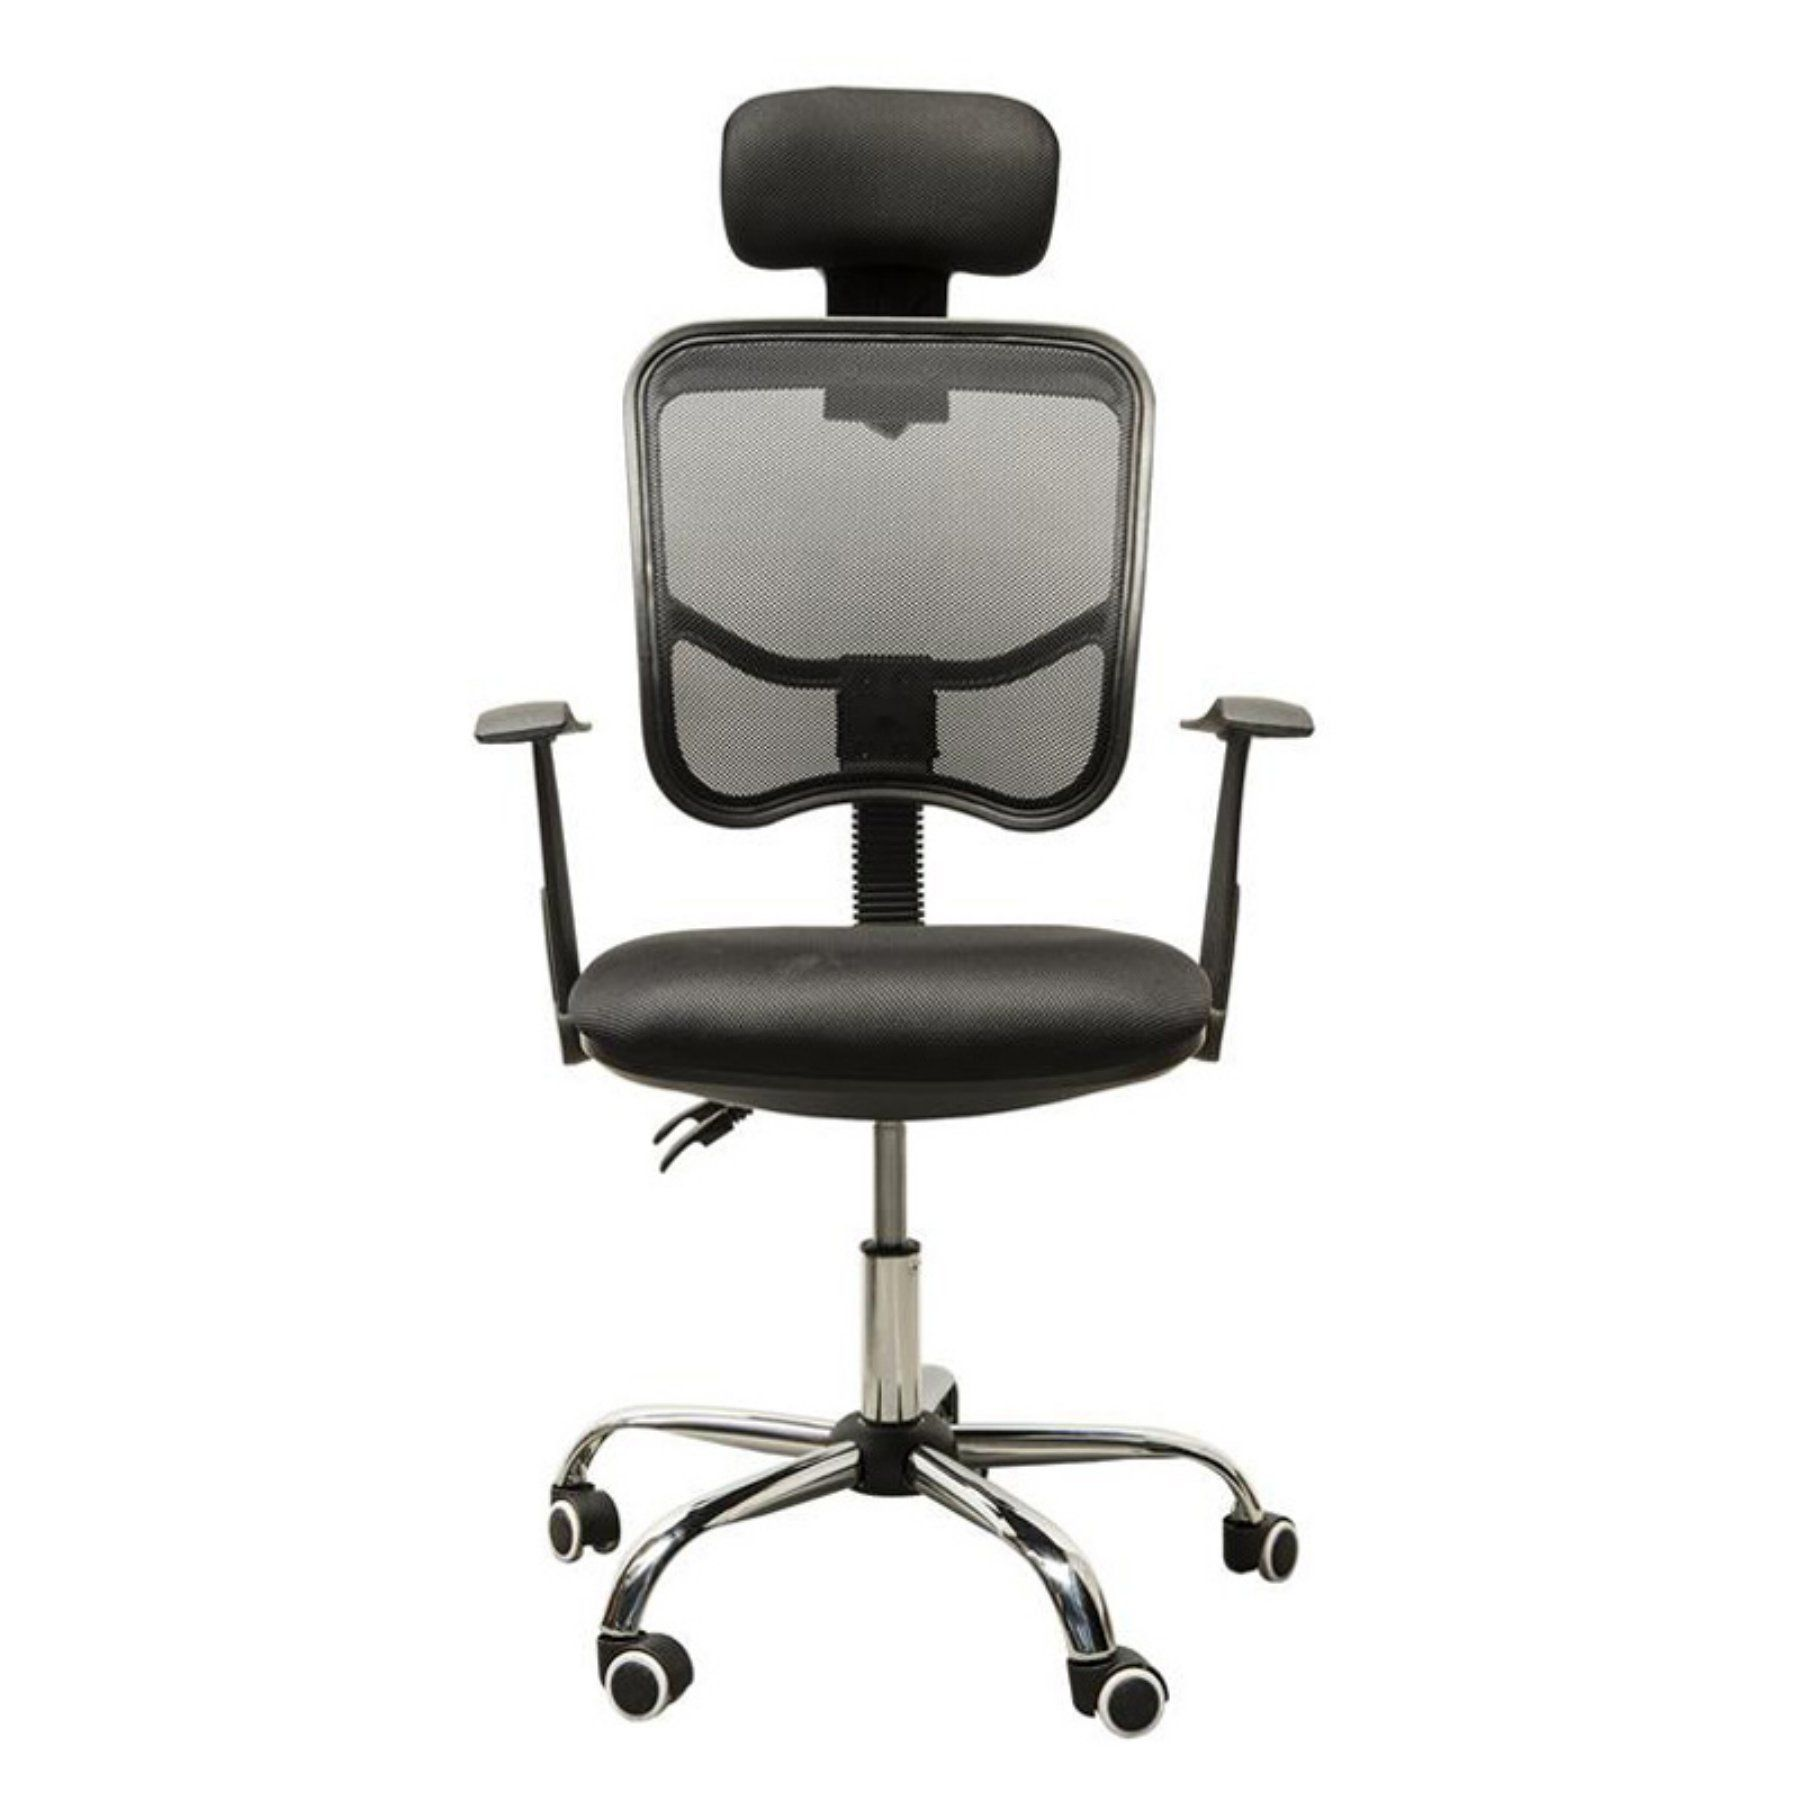 Adjustable mesh high back office chair with